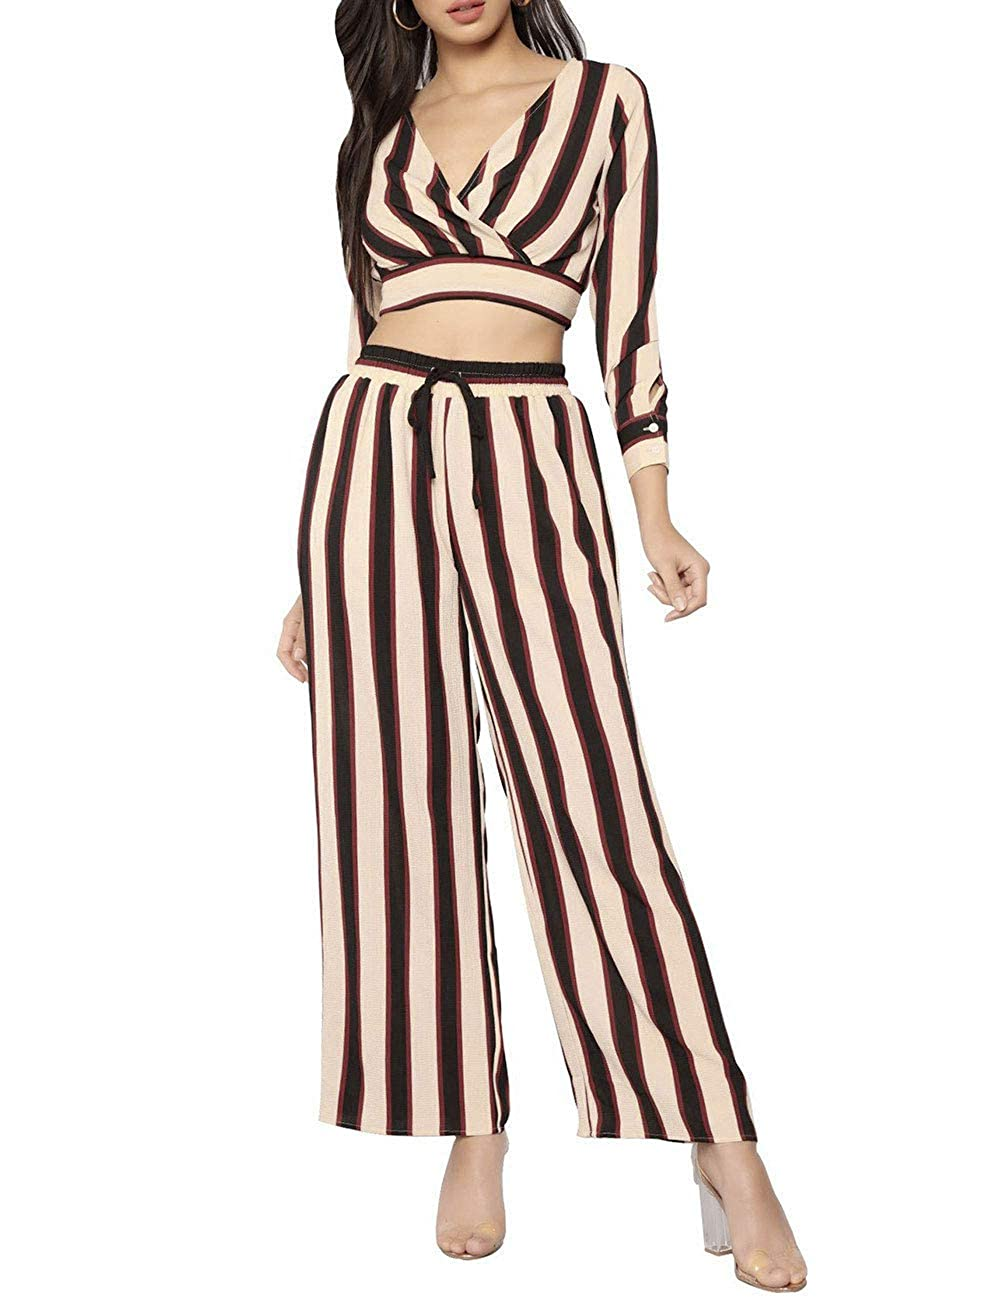 Black&red Angsuttc Women's Striped 2 Piece Outfit Wrap V Neck Crop Top and Wide Leg Long Pants Set